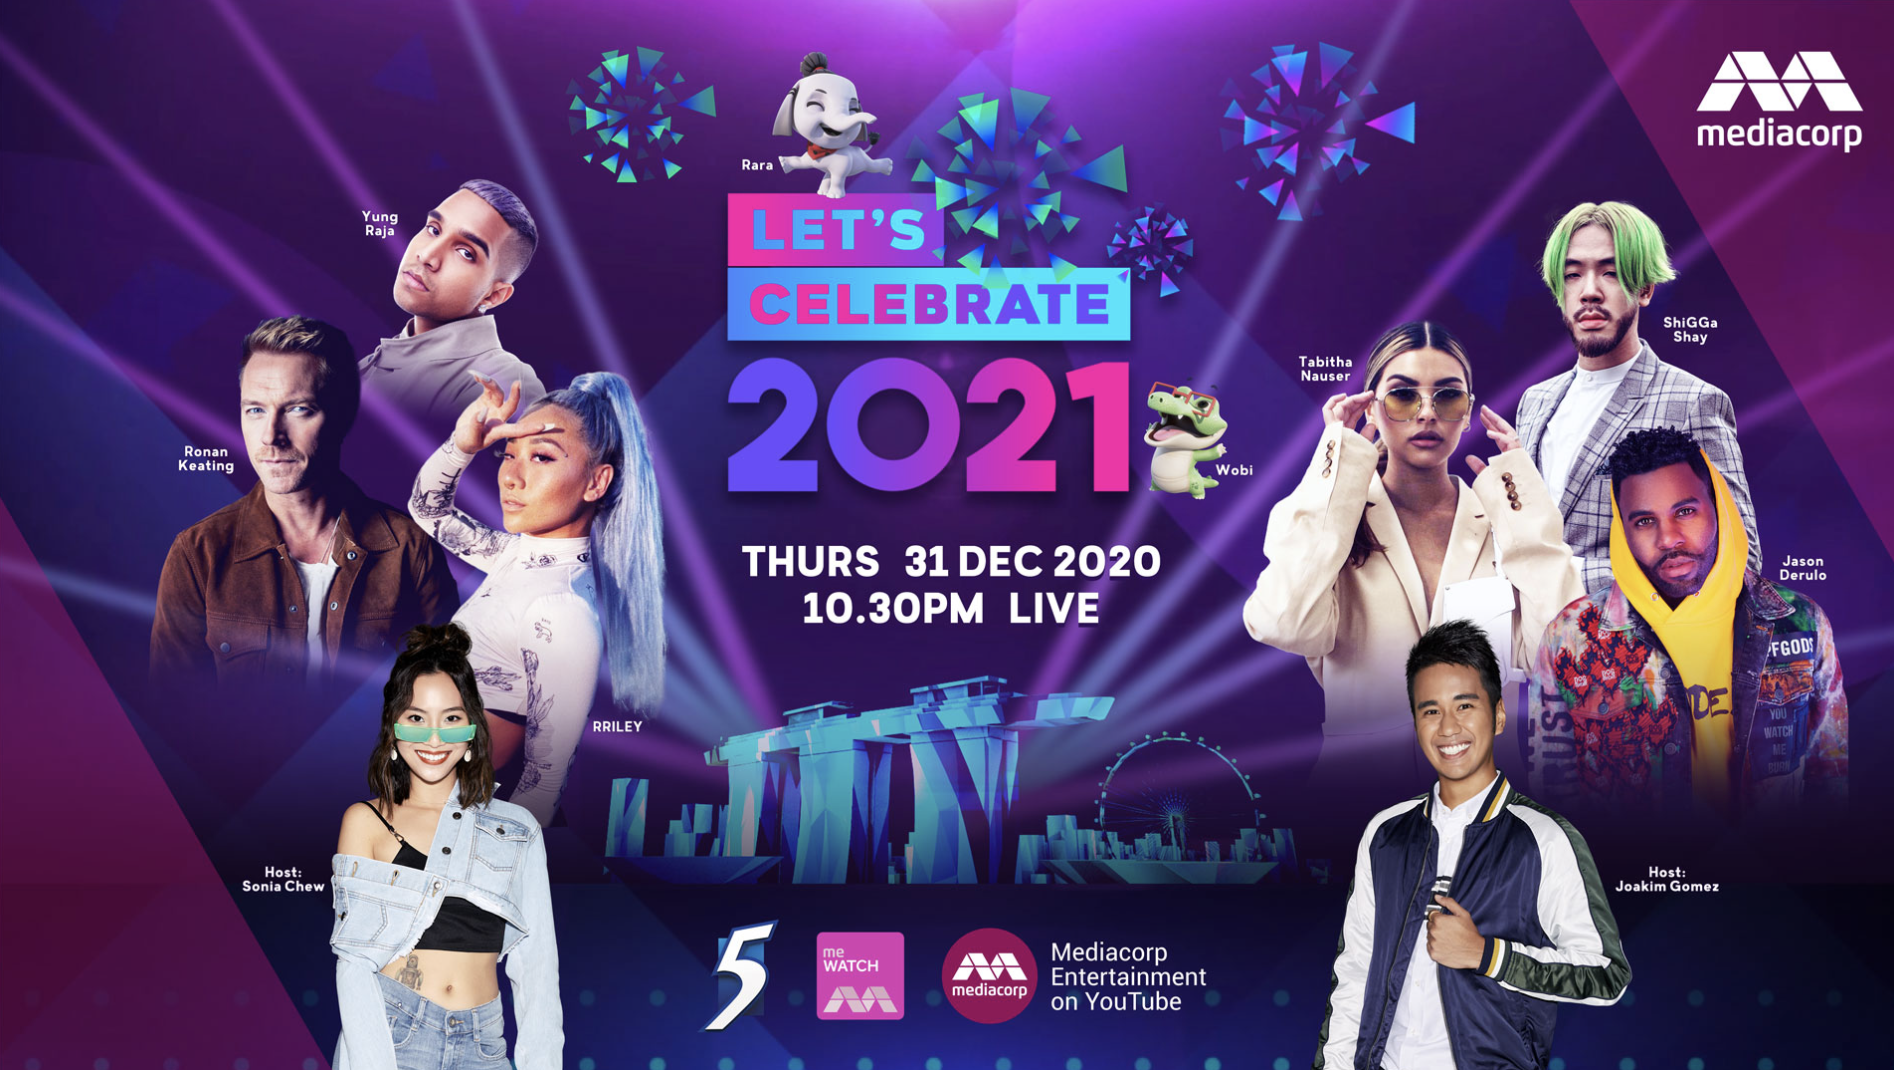 Ring in the new year on a high note with Let's Celebrate 2021. Photo courtesy: Mediacorp